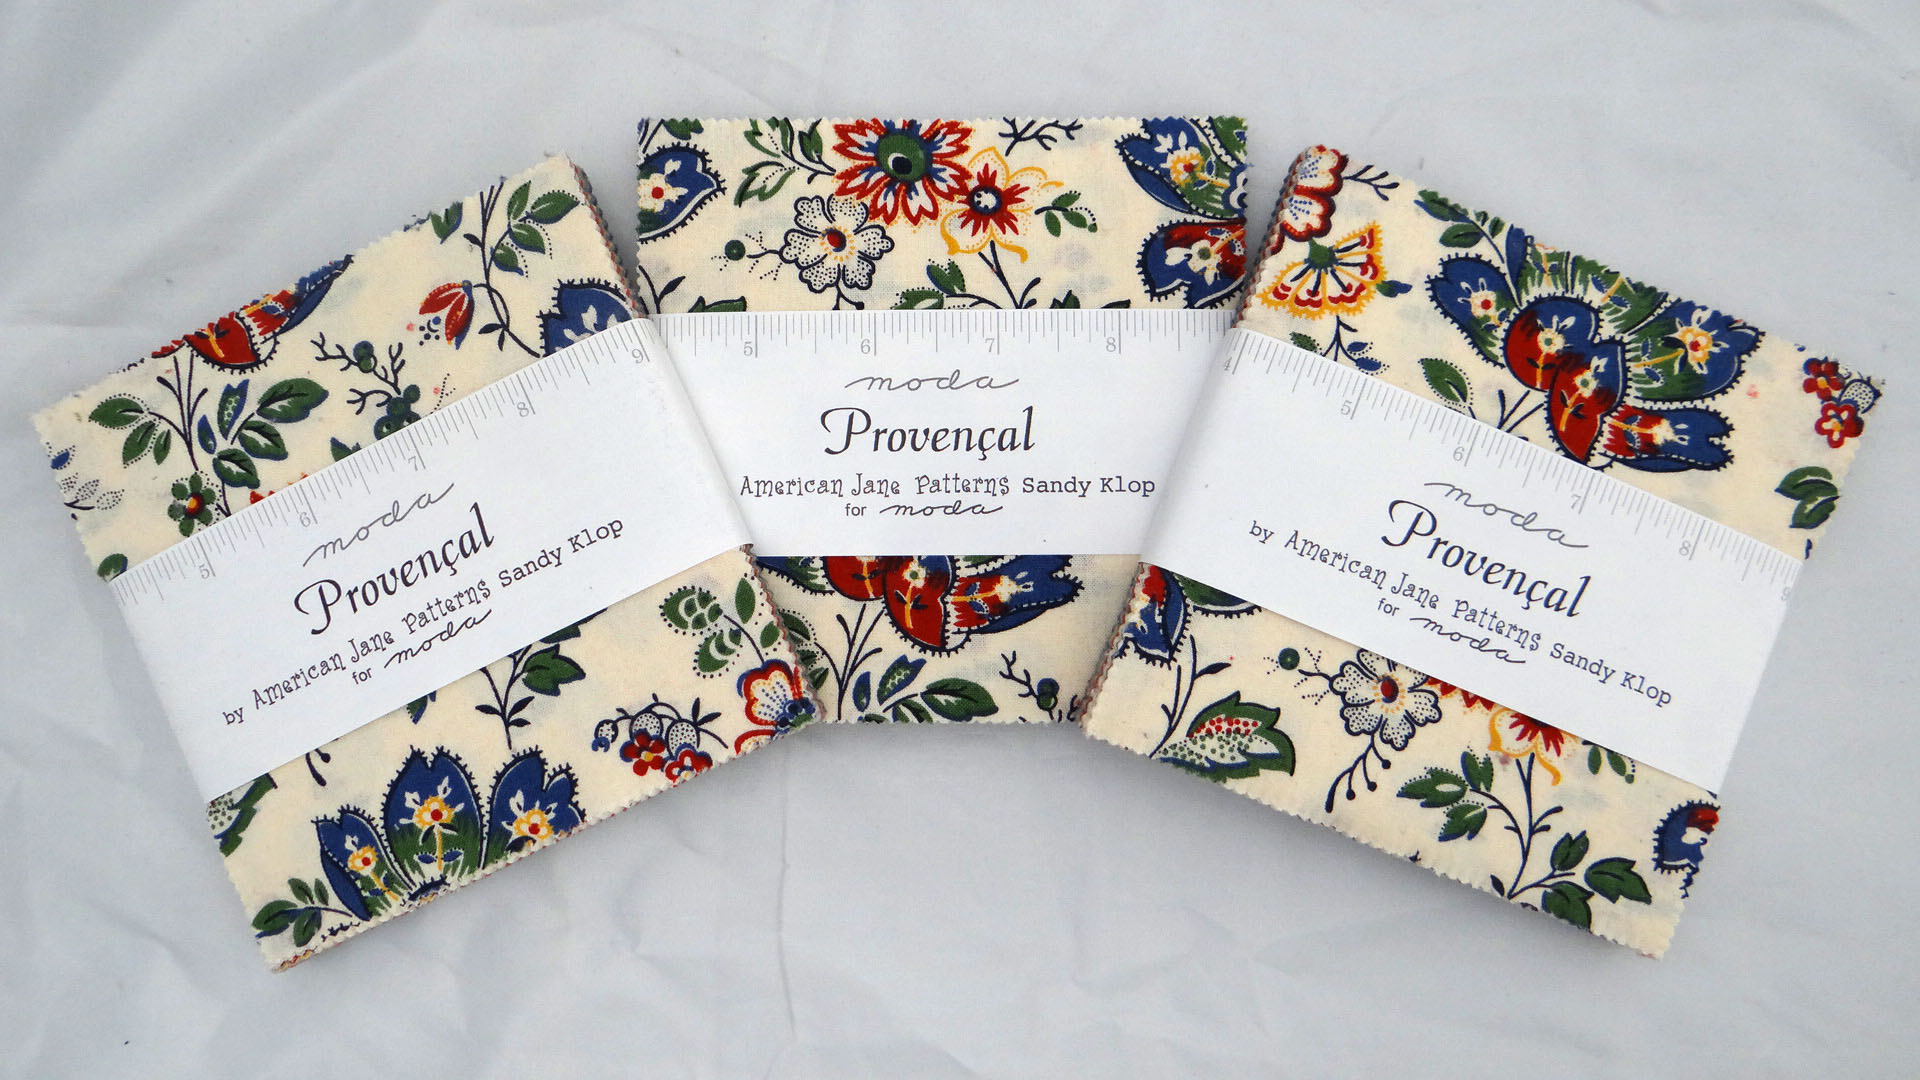 Provencal AMERICAN JANE PATTERNS 3CP.jpg